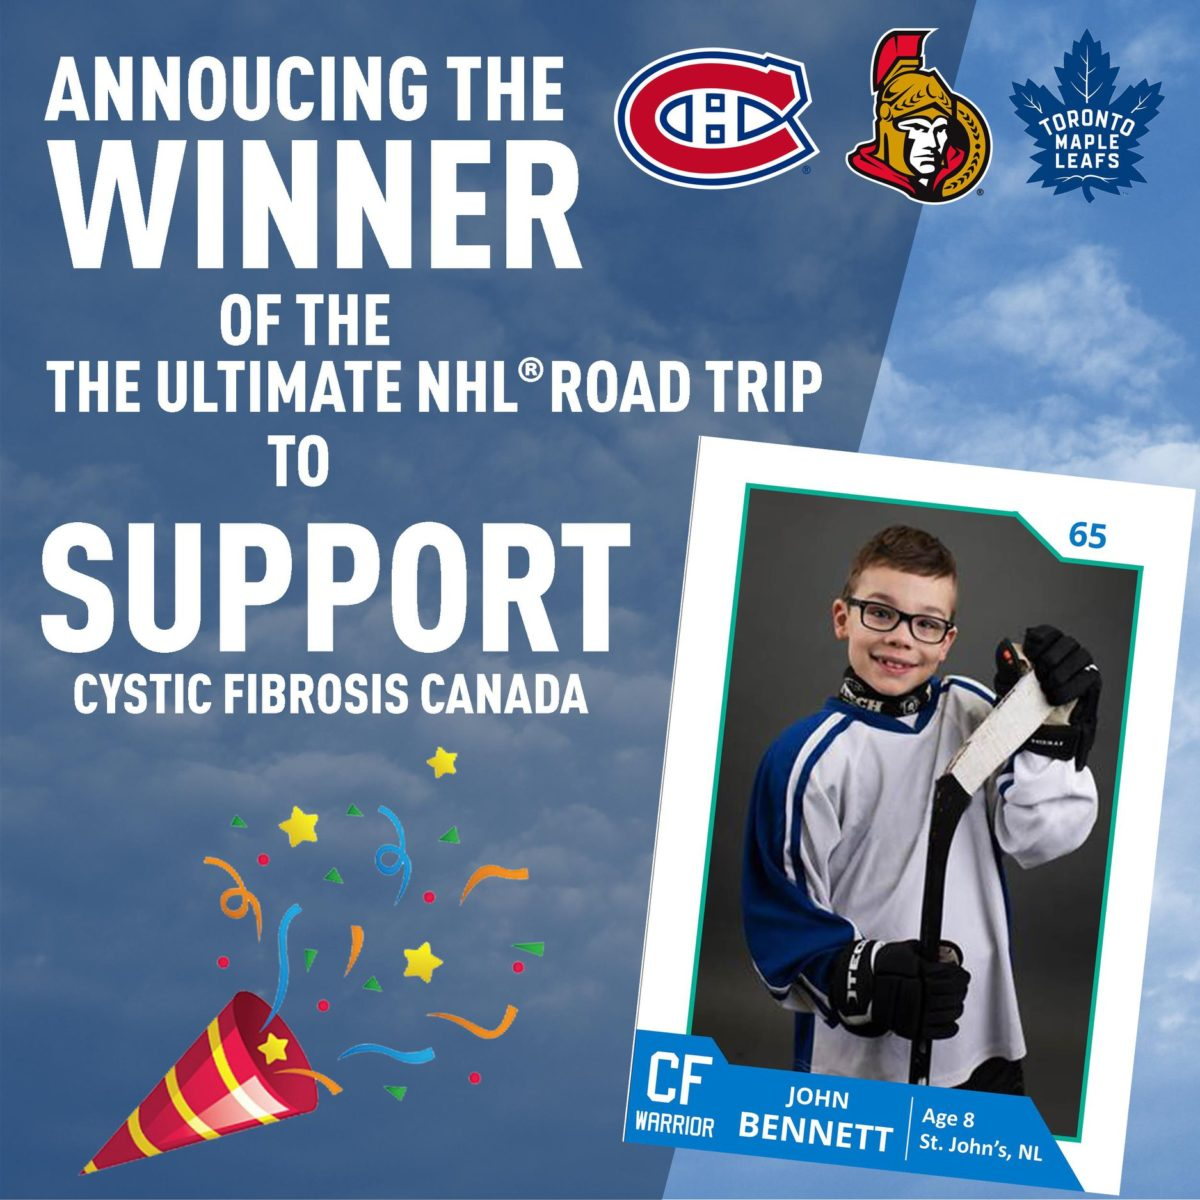 Ultimate NHL Road Trip Winners!